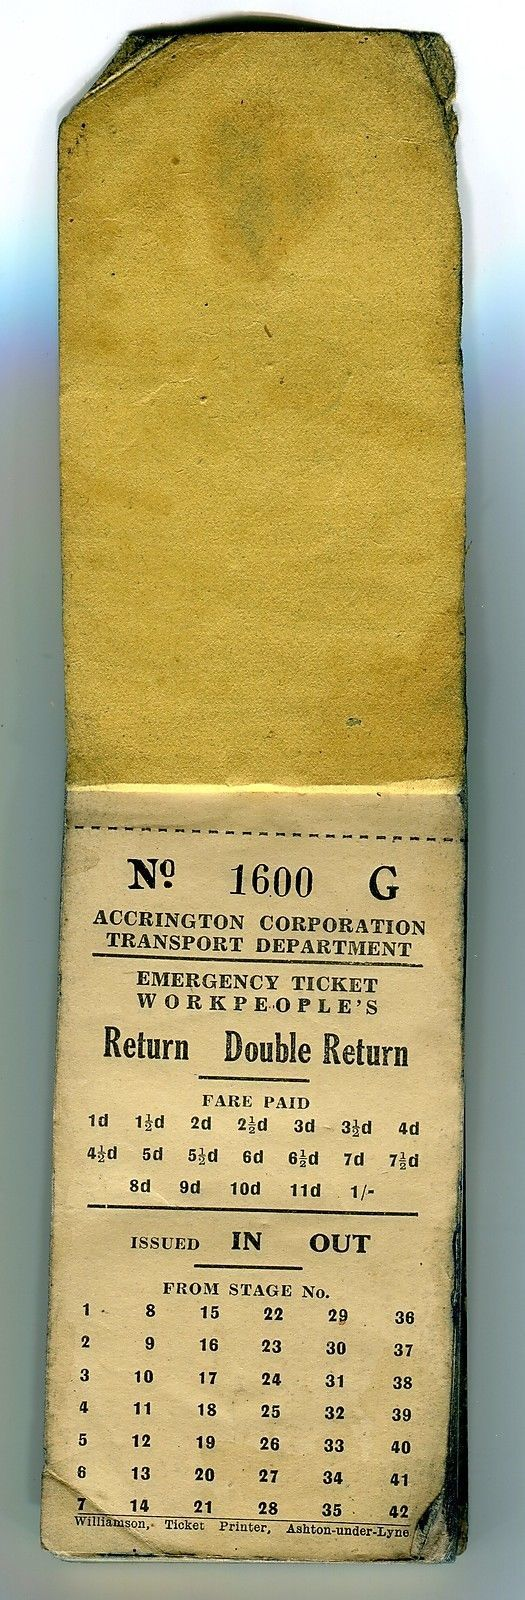 A book of 50 unused 'Emergency Workpeople's Tickets', from Accrington Corporation Transport Department. There is also some 'dog-earing' to the corners of the top tickets. | eBay!